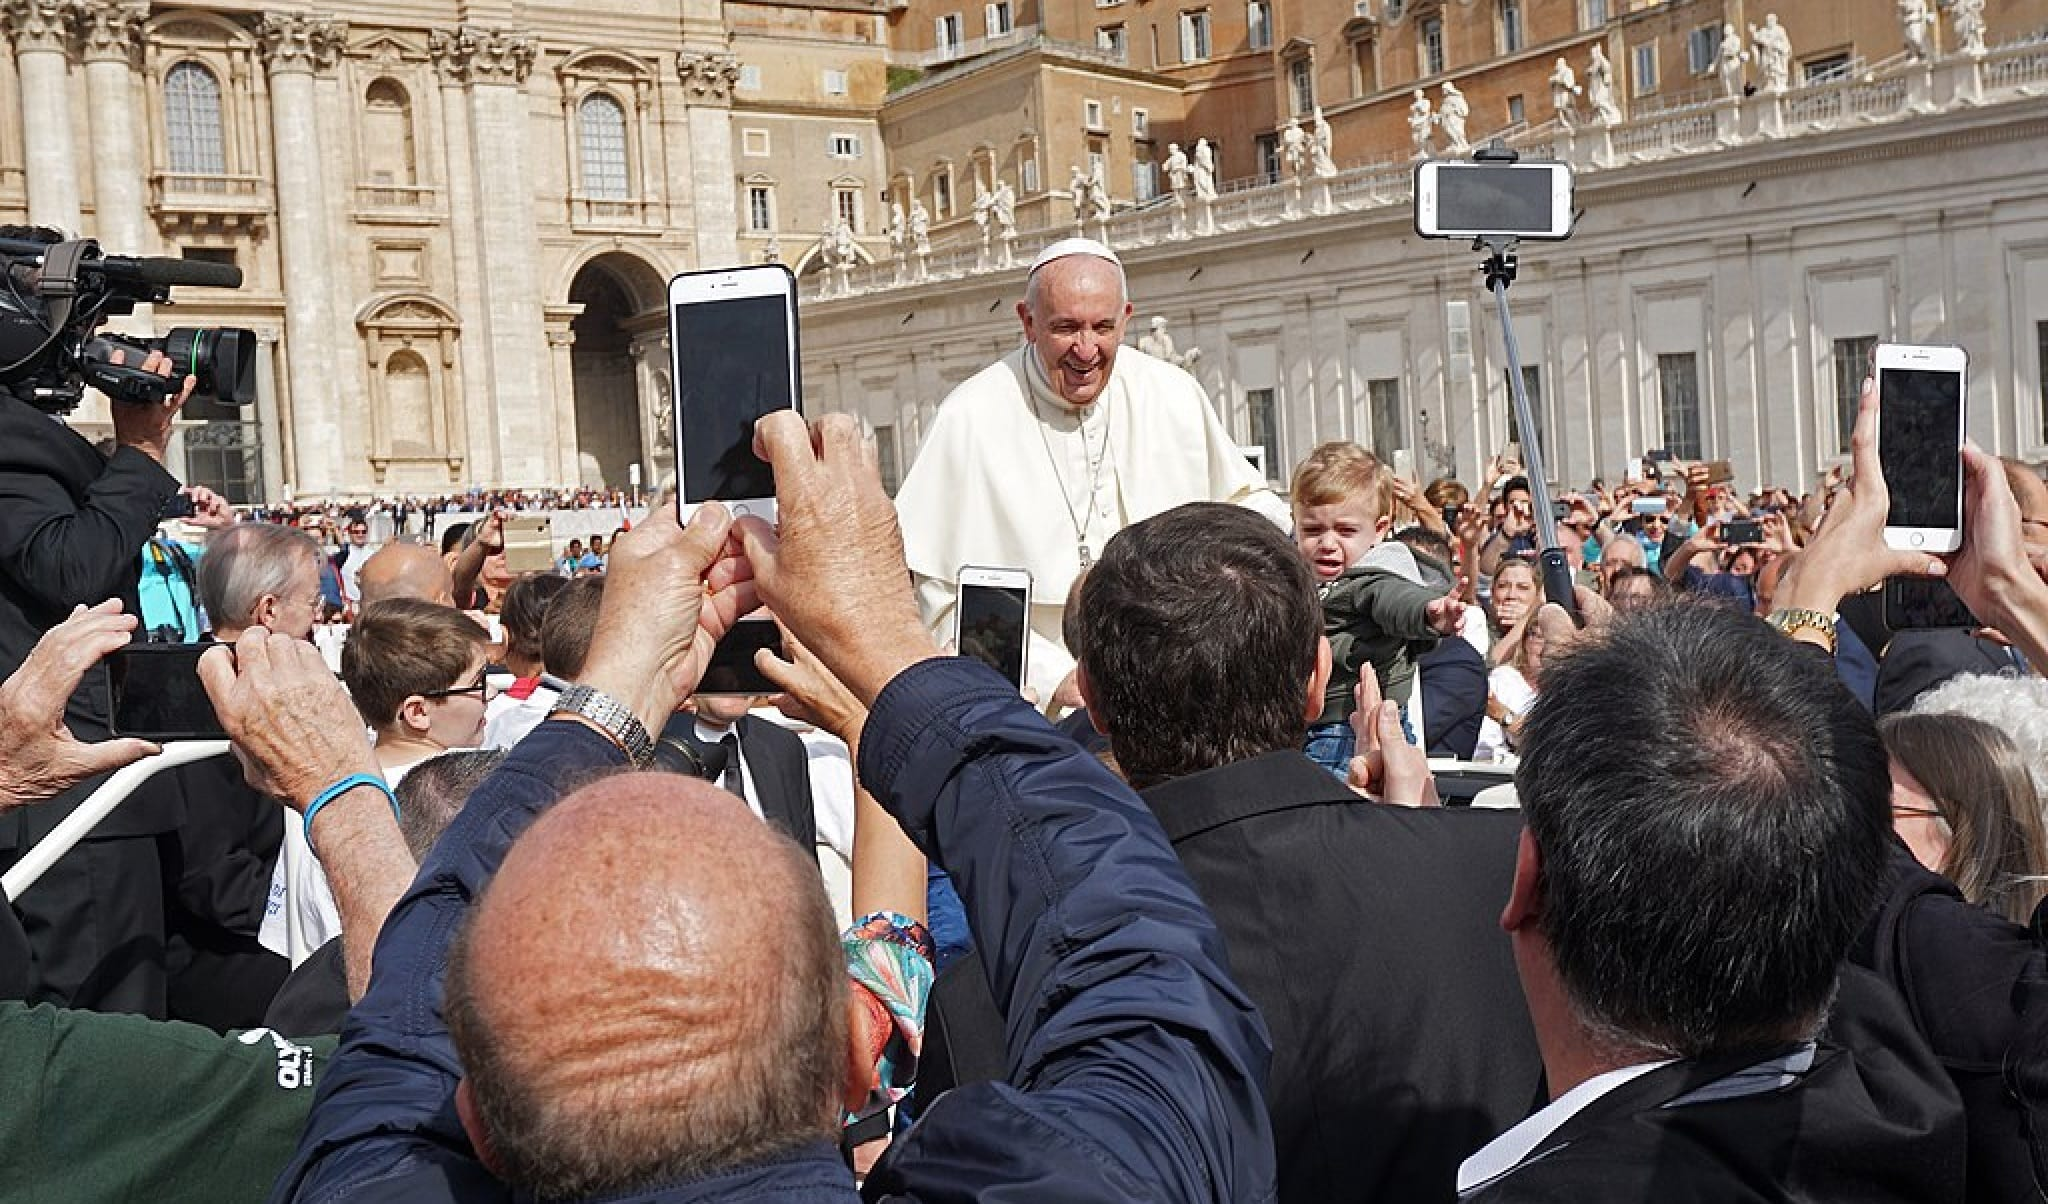 Kindle Vs Sony Reader: What Is In The Pope's Hand?